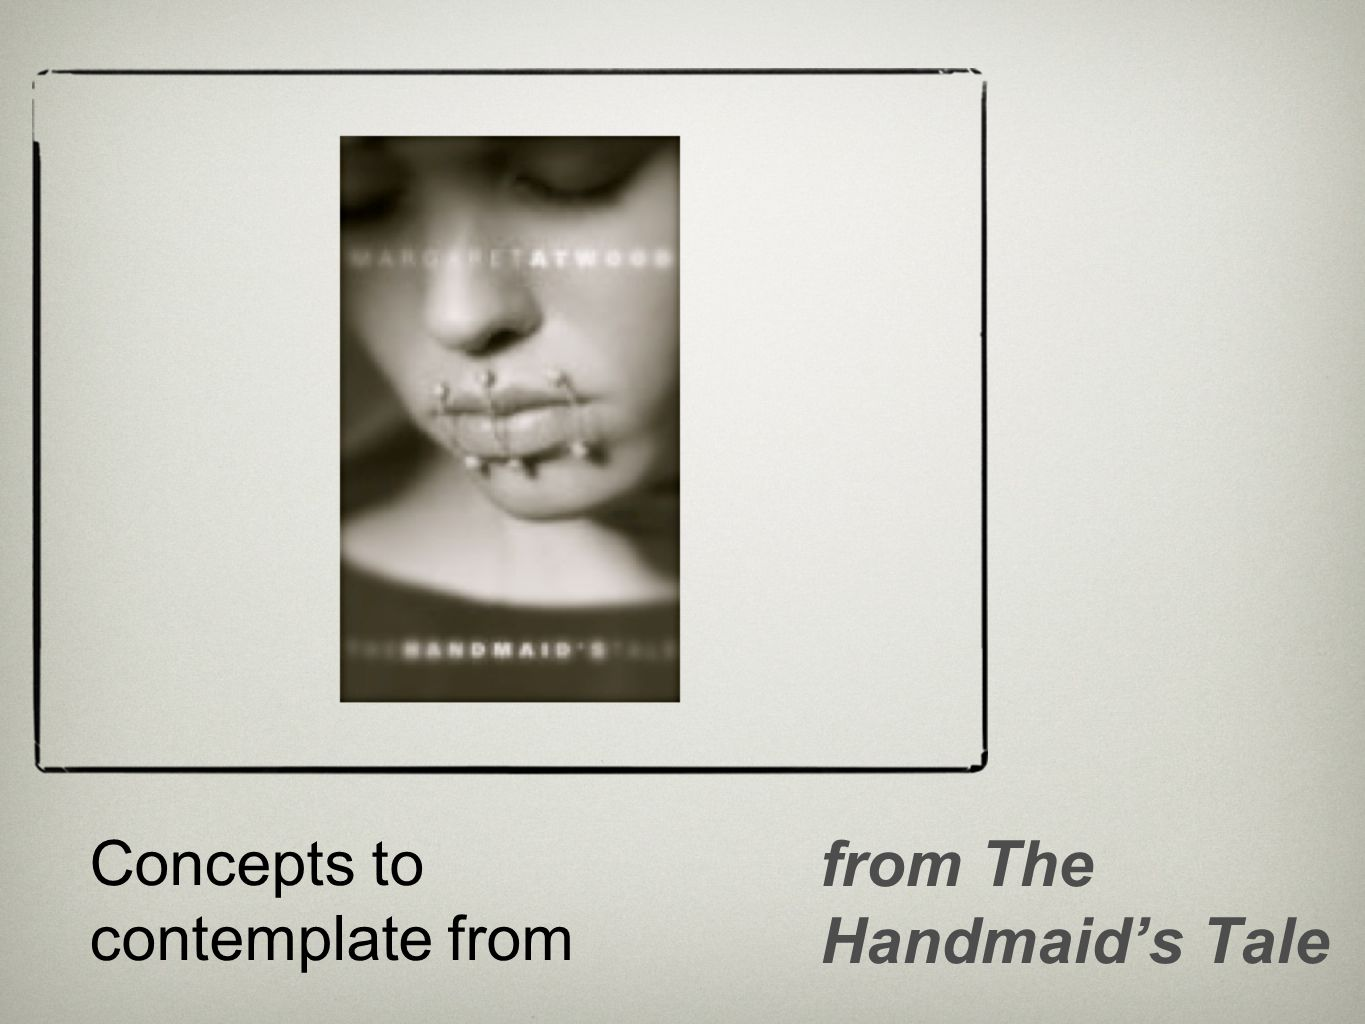 Concepts to contemplate from from The Handmaid's Tale